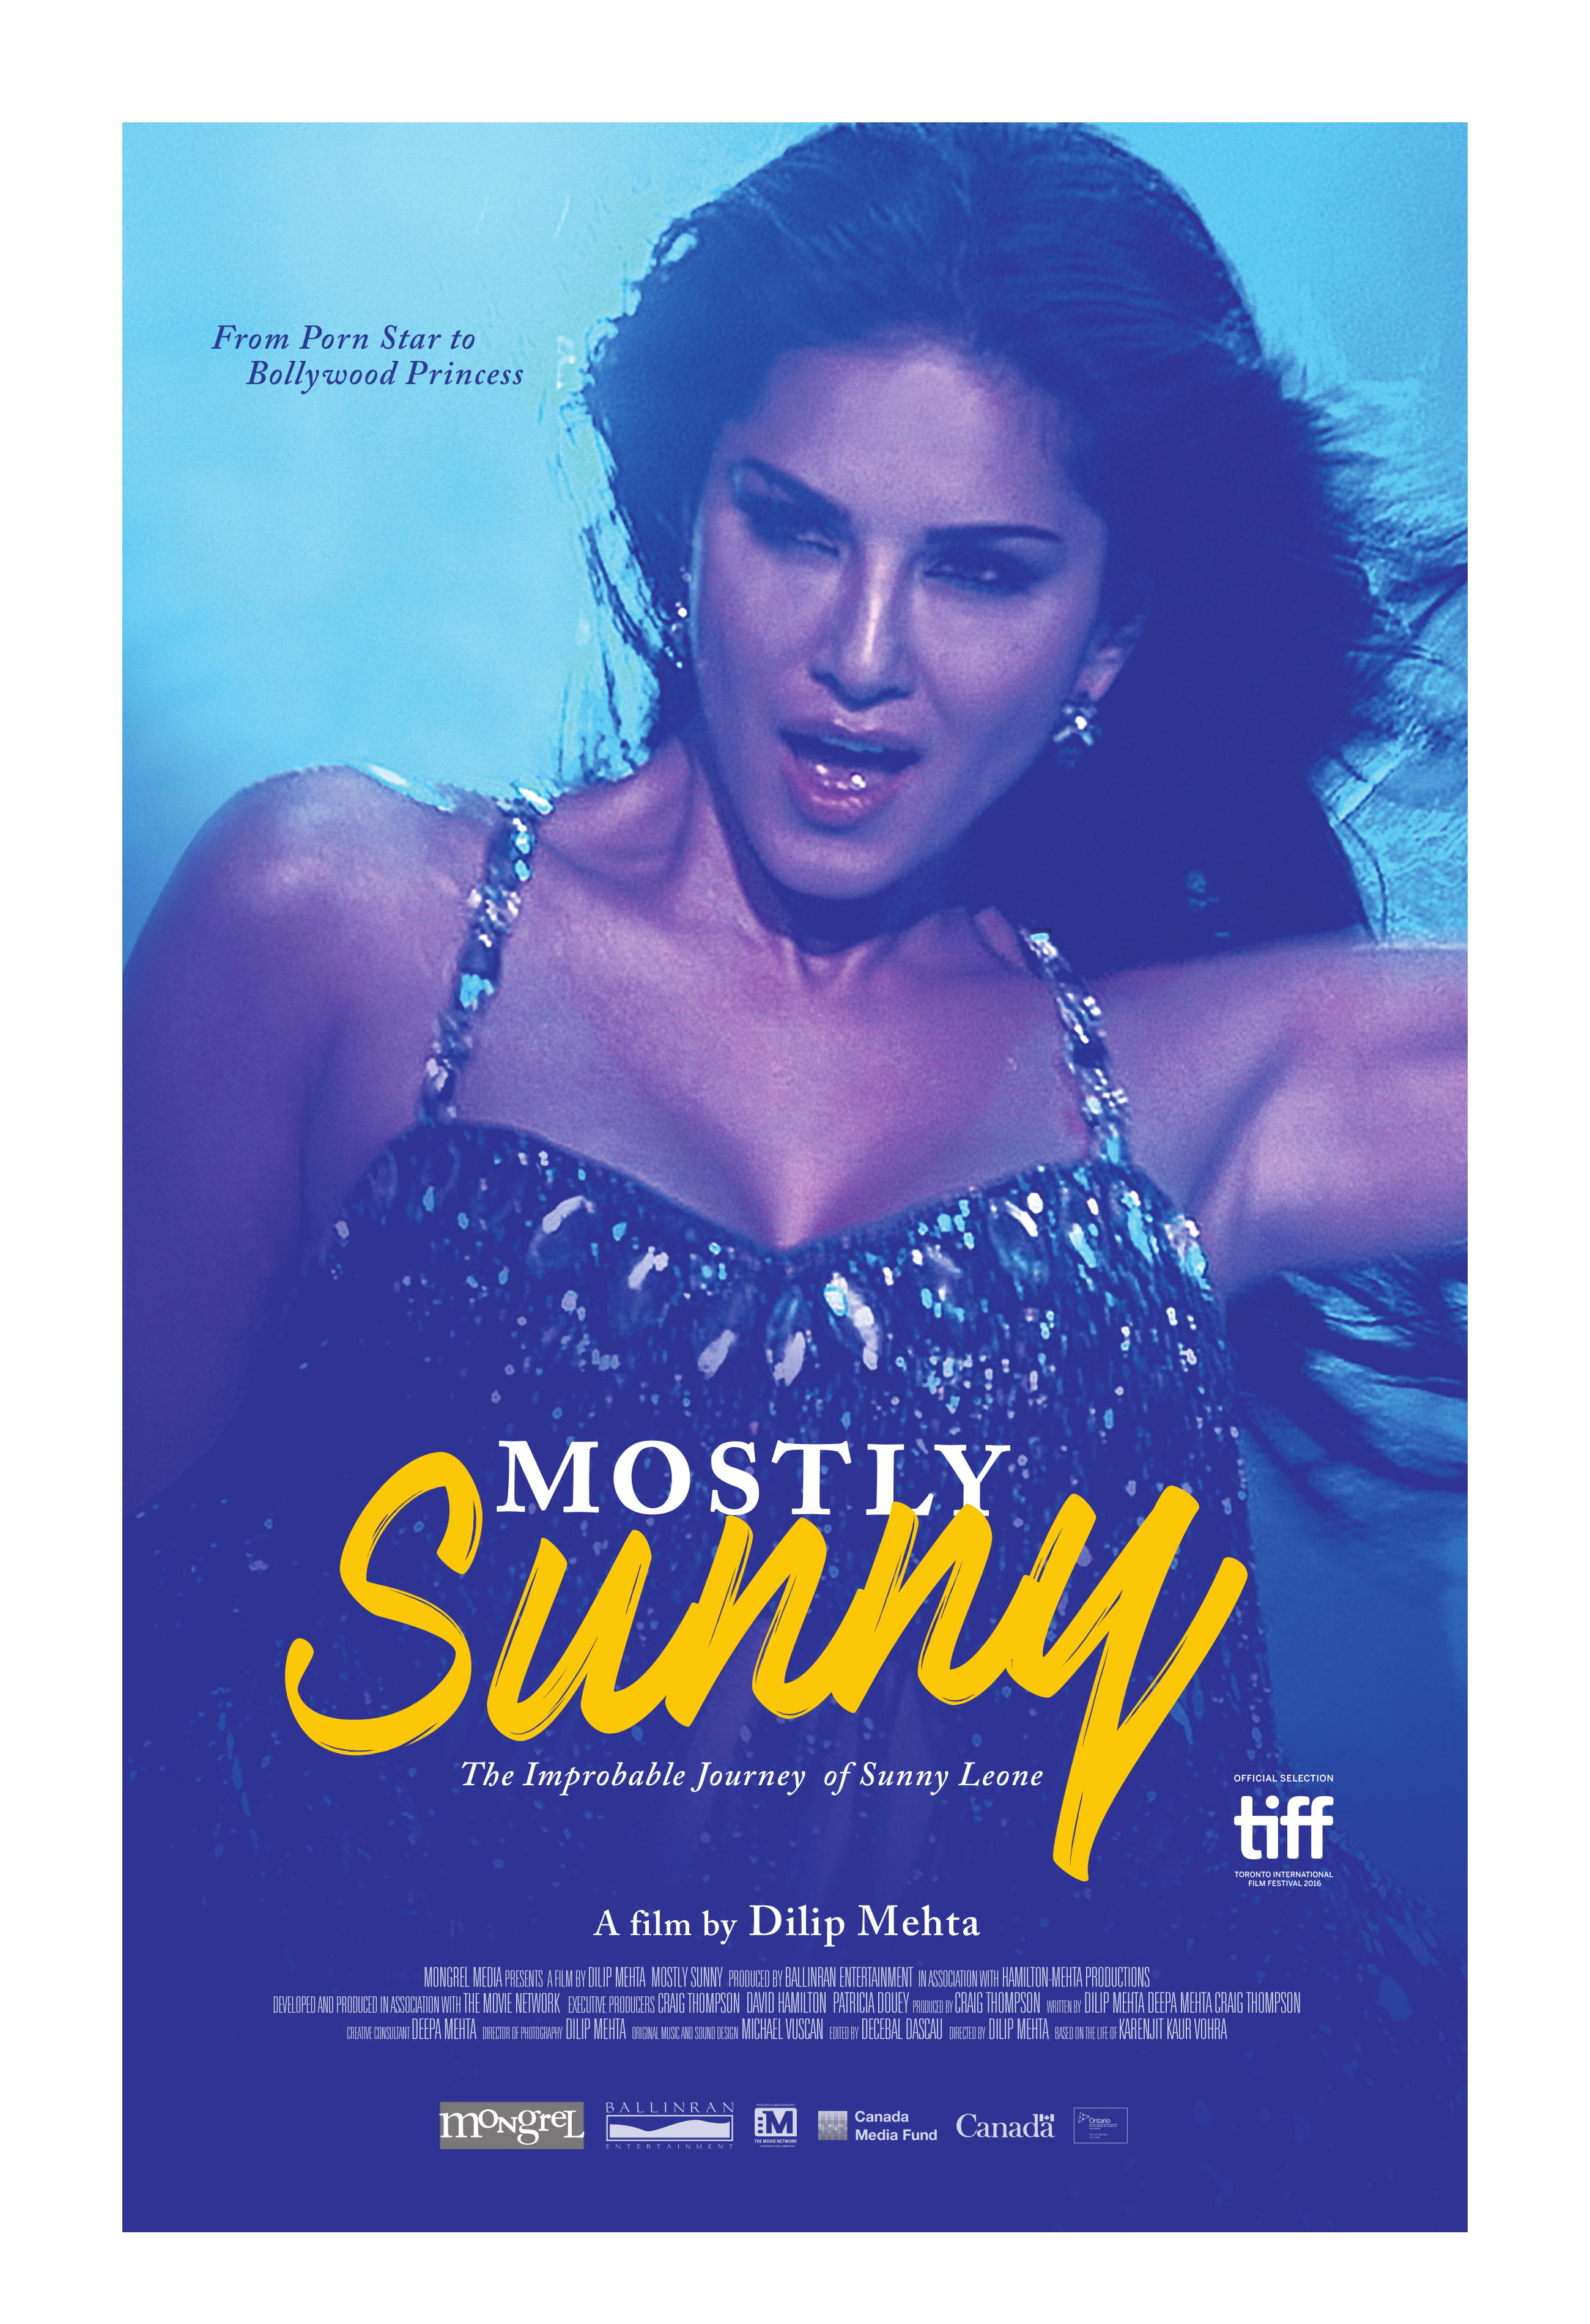 Mostly Sunny 13x19 Hallway Poster 1